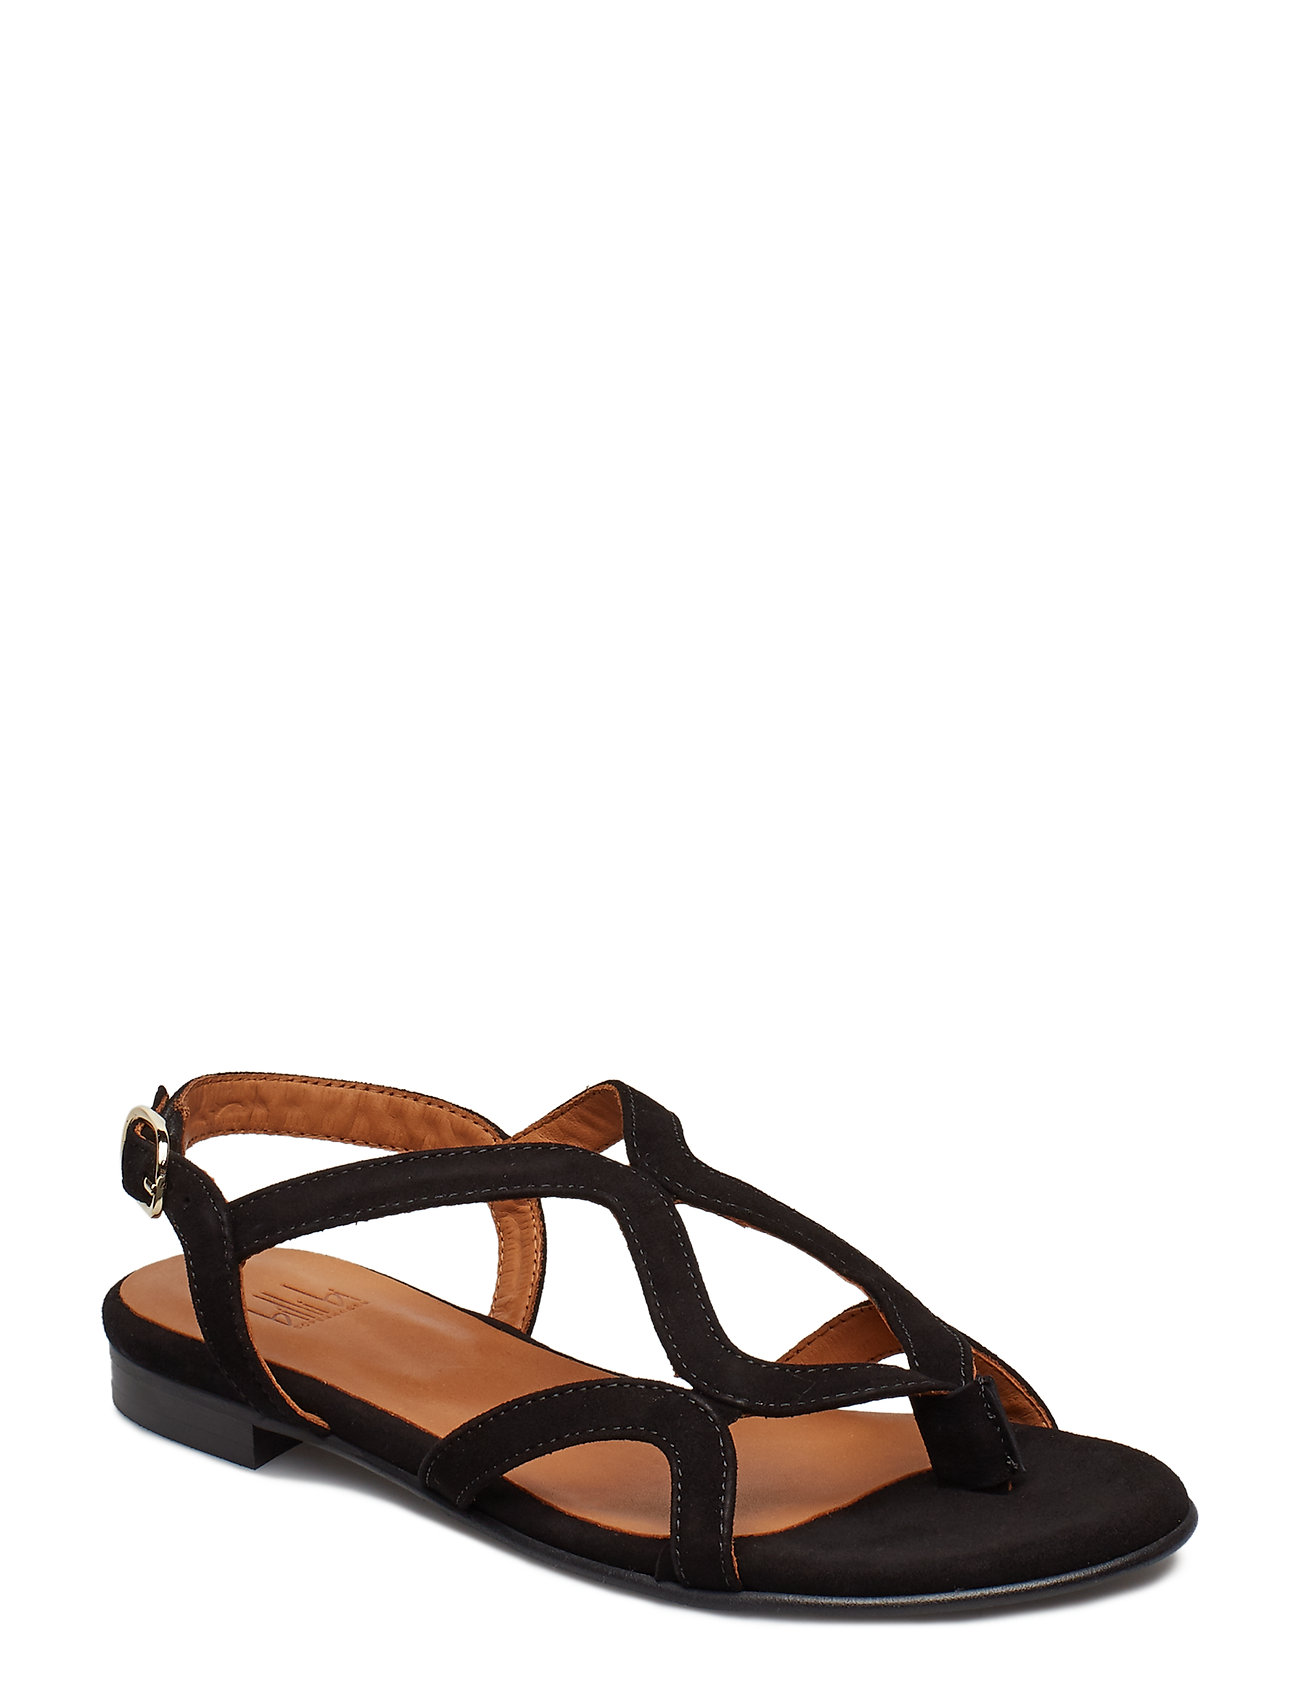 Sandals Flade Sandaler Sort BILLI BI